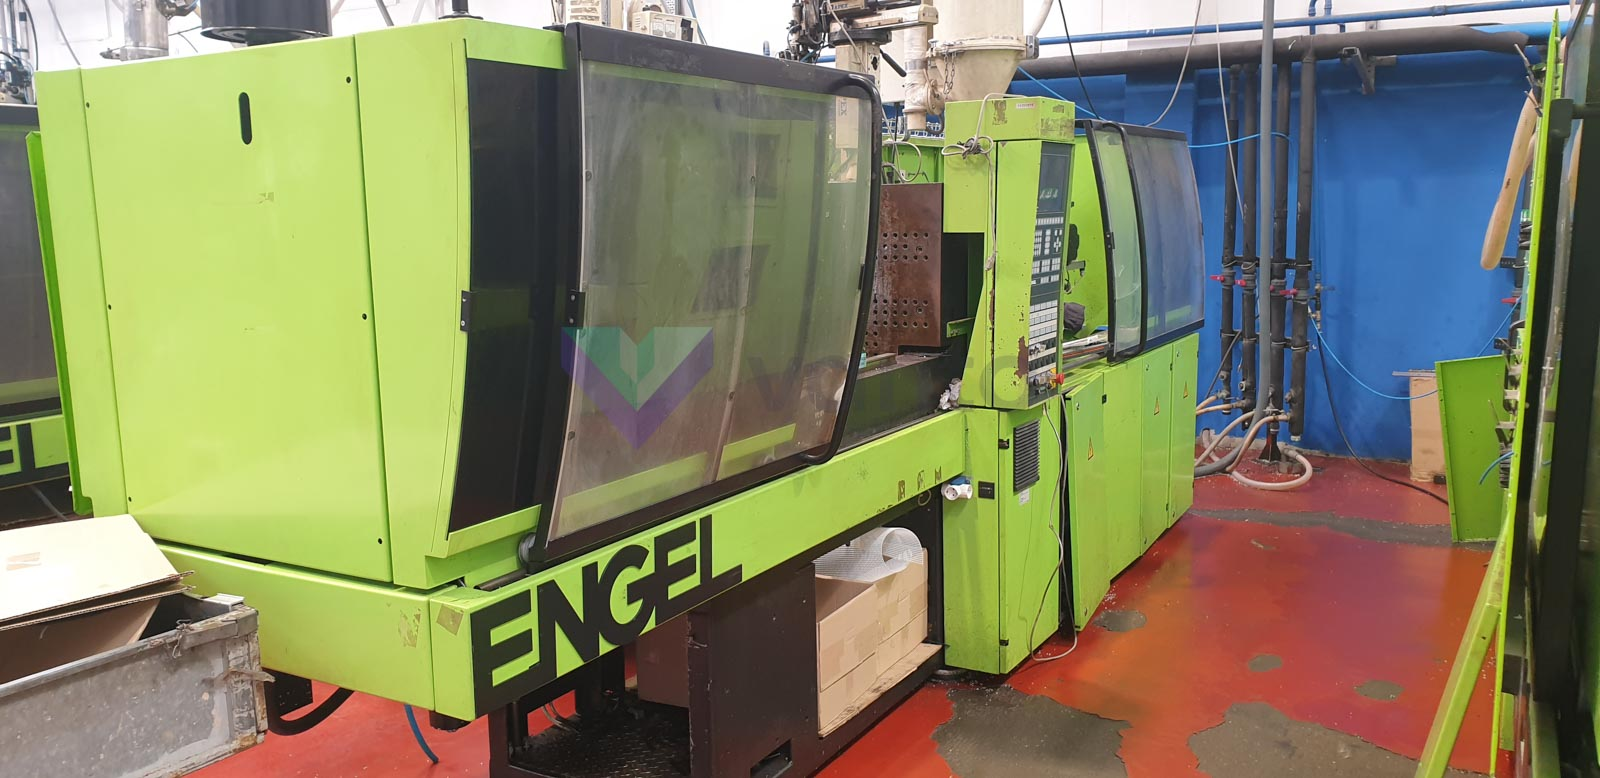 ENGEL ES 500 / 110 HL-V 110t injection molding machine (2002) id10505